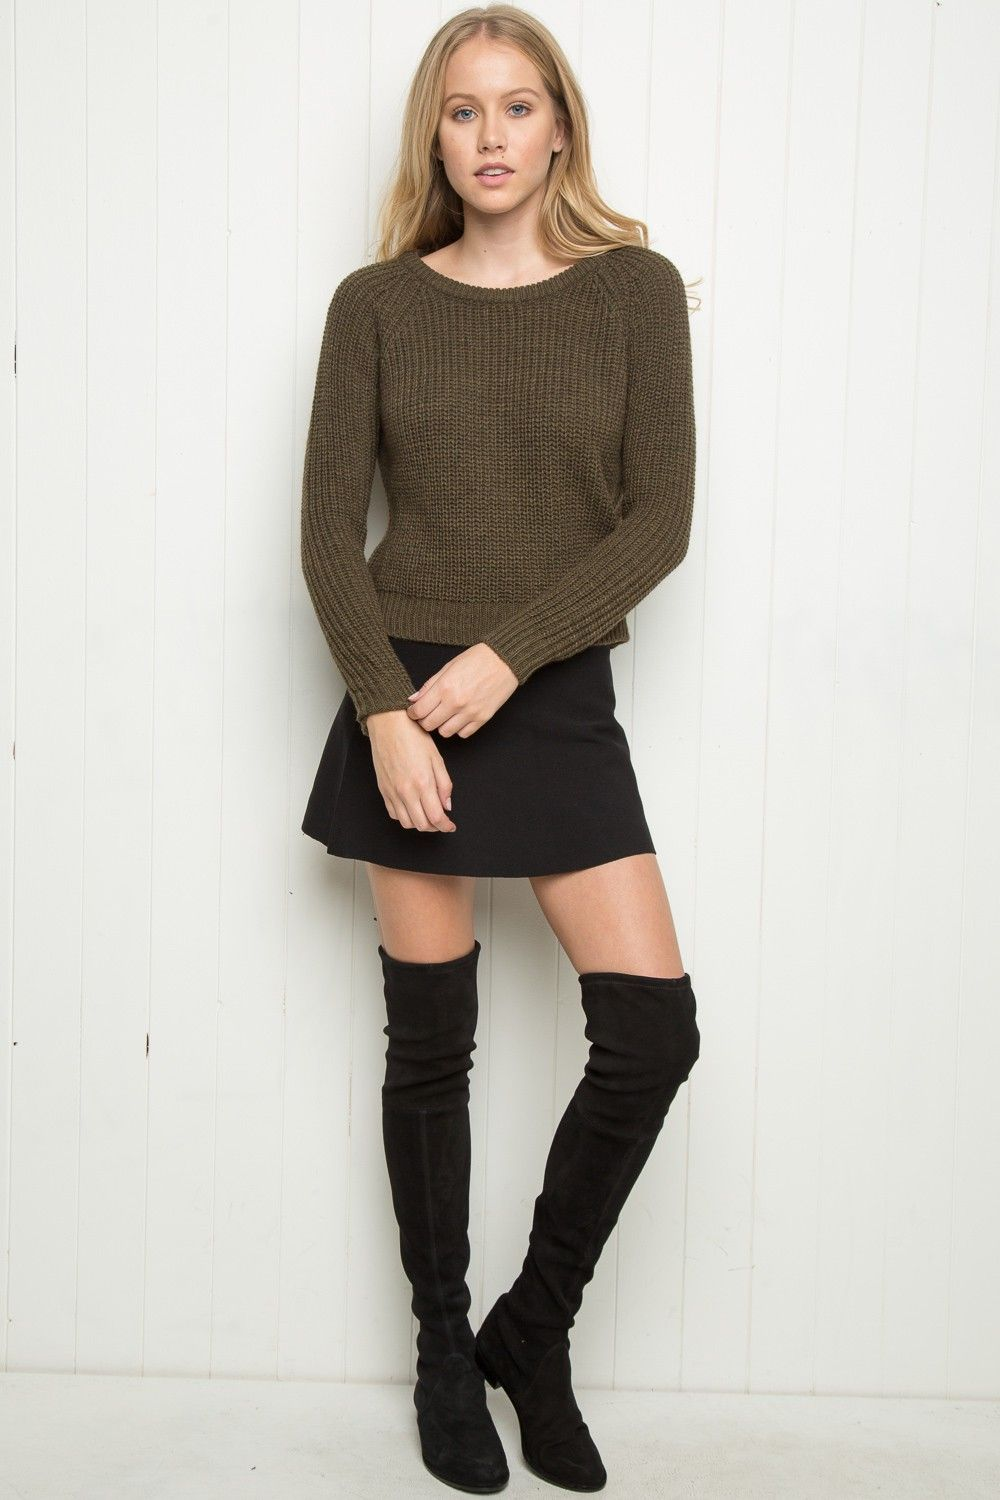 Brandy ♥ Melville | Ellis Sweater - Just In